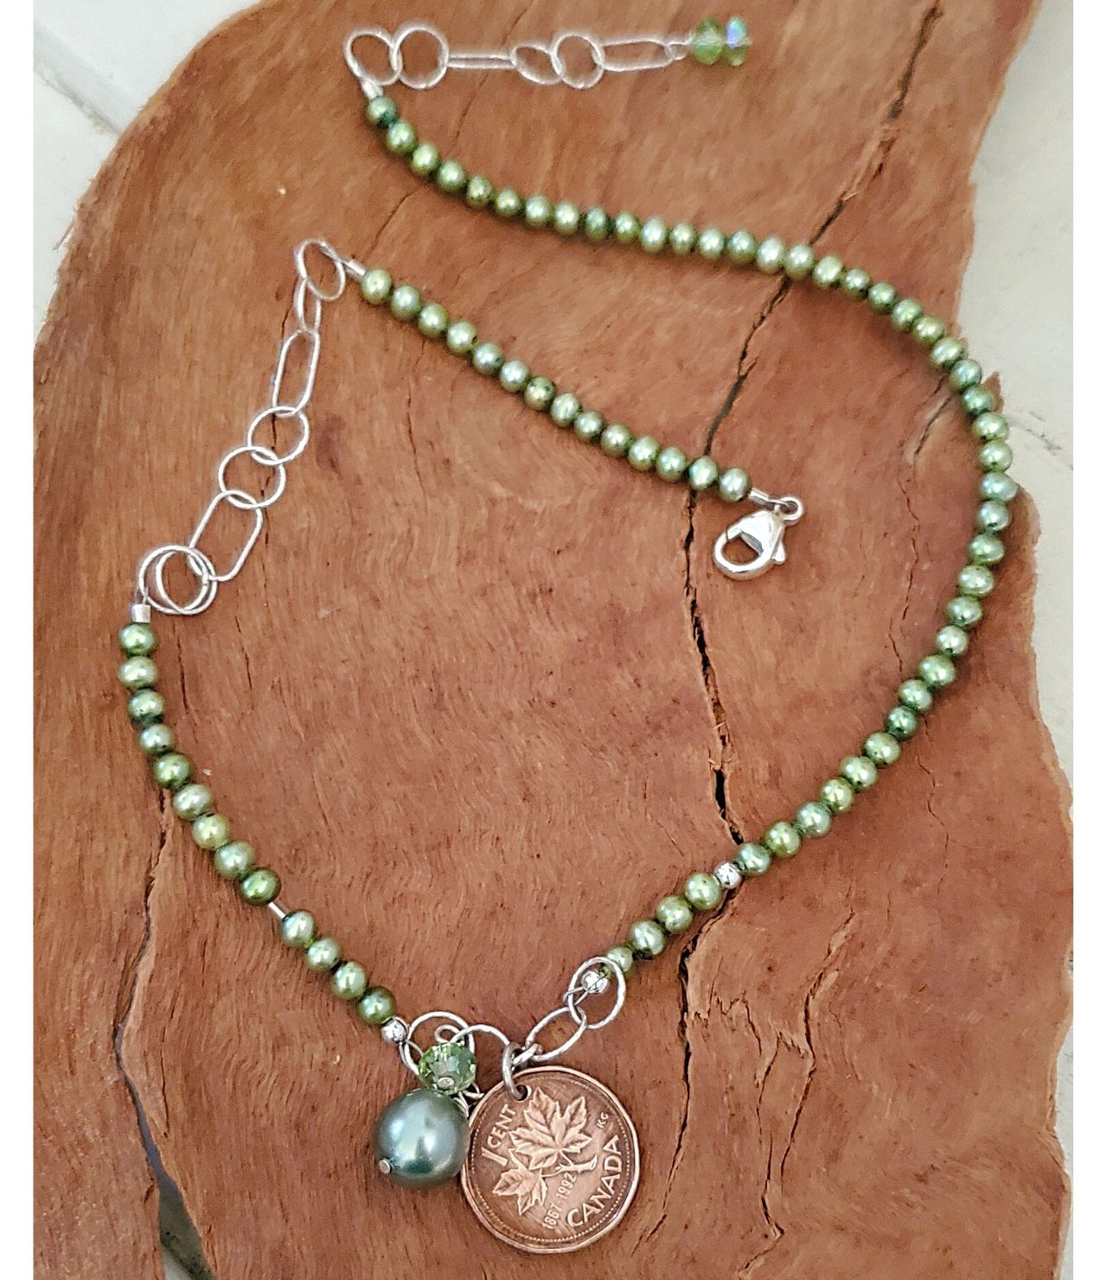 full view Canadian coin green pearl necklace on wood